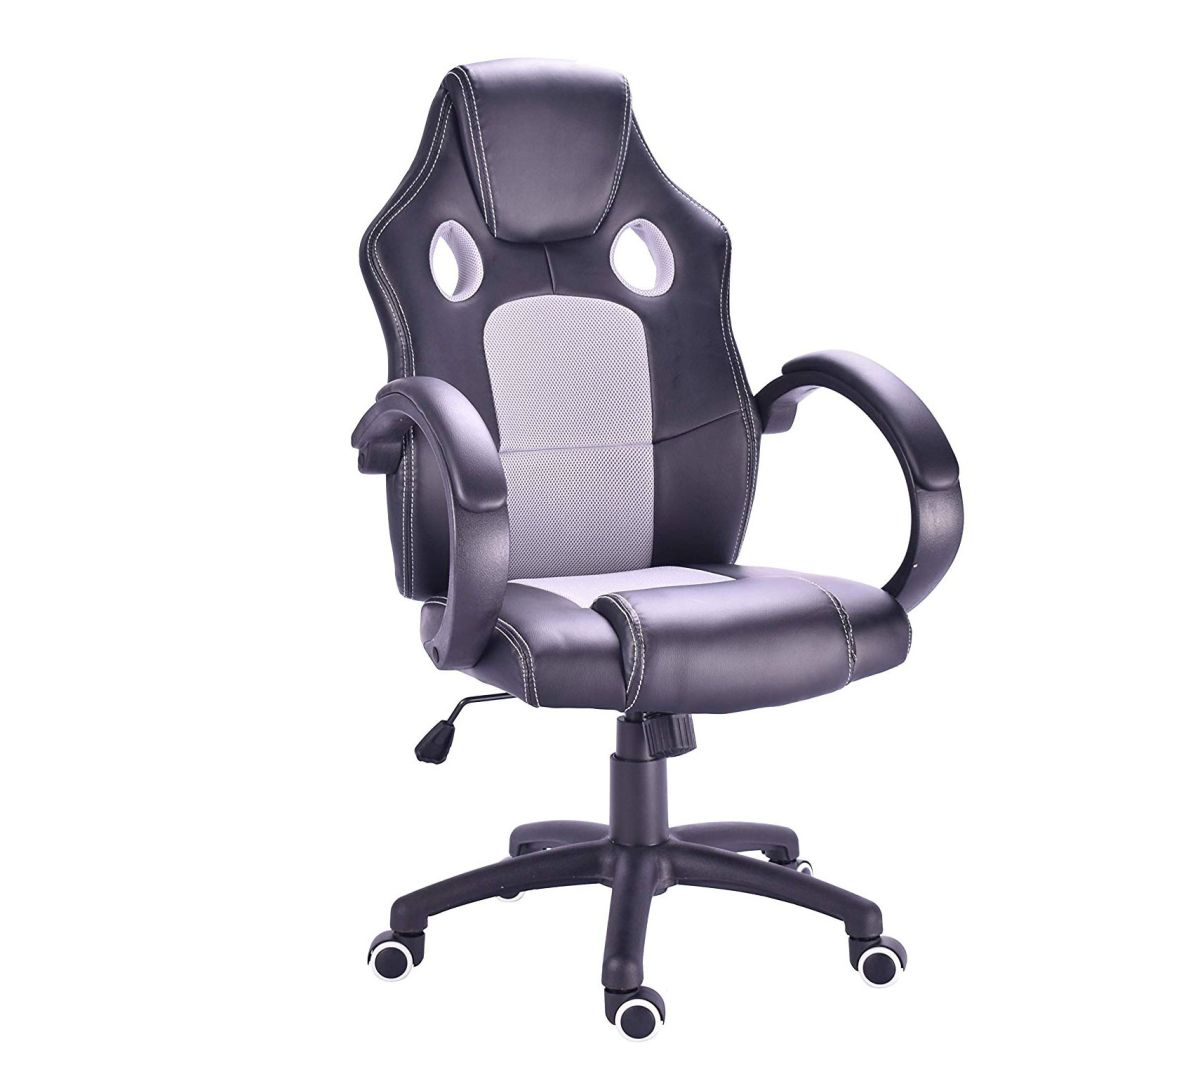 The best office chair of 2019 | Creative Bloq